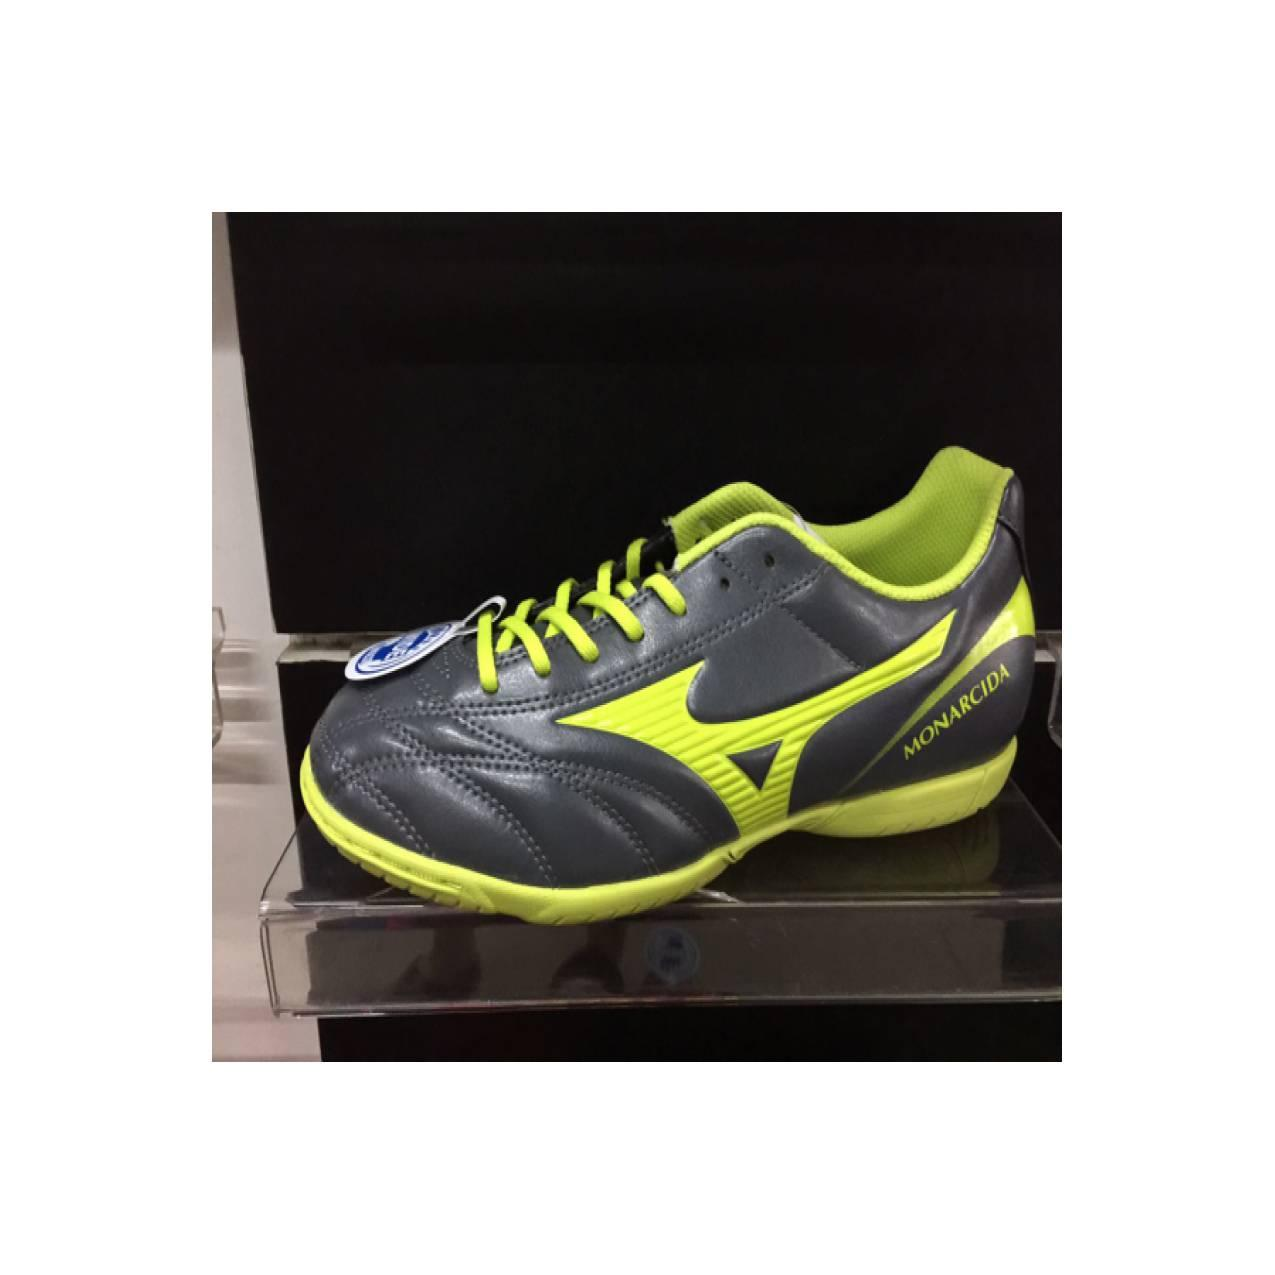 Sepatu futsal mizuno original monarcida 2 FS IN (wide) darkshadow/lime